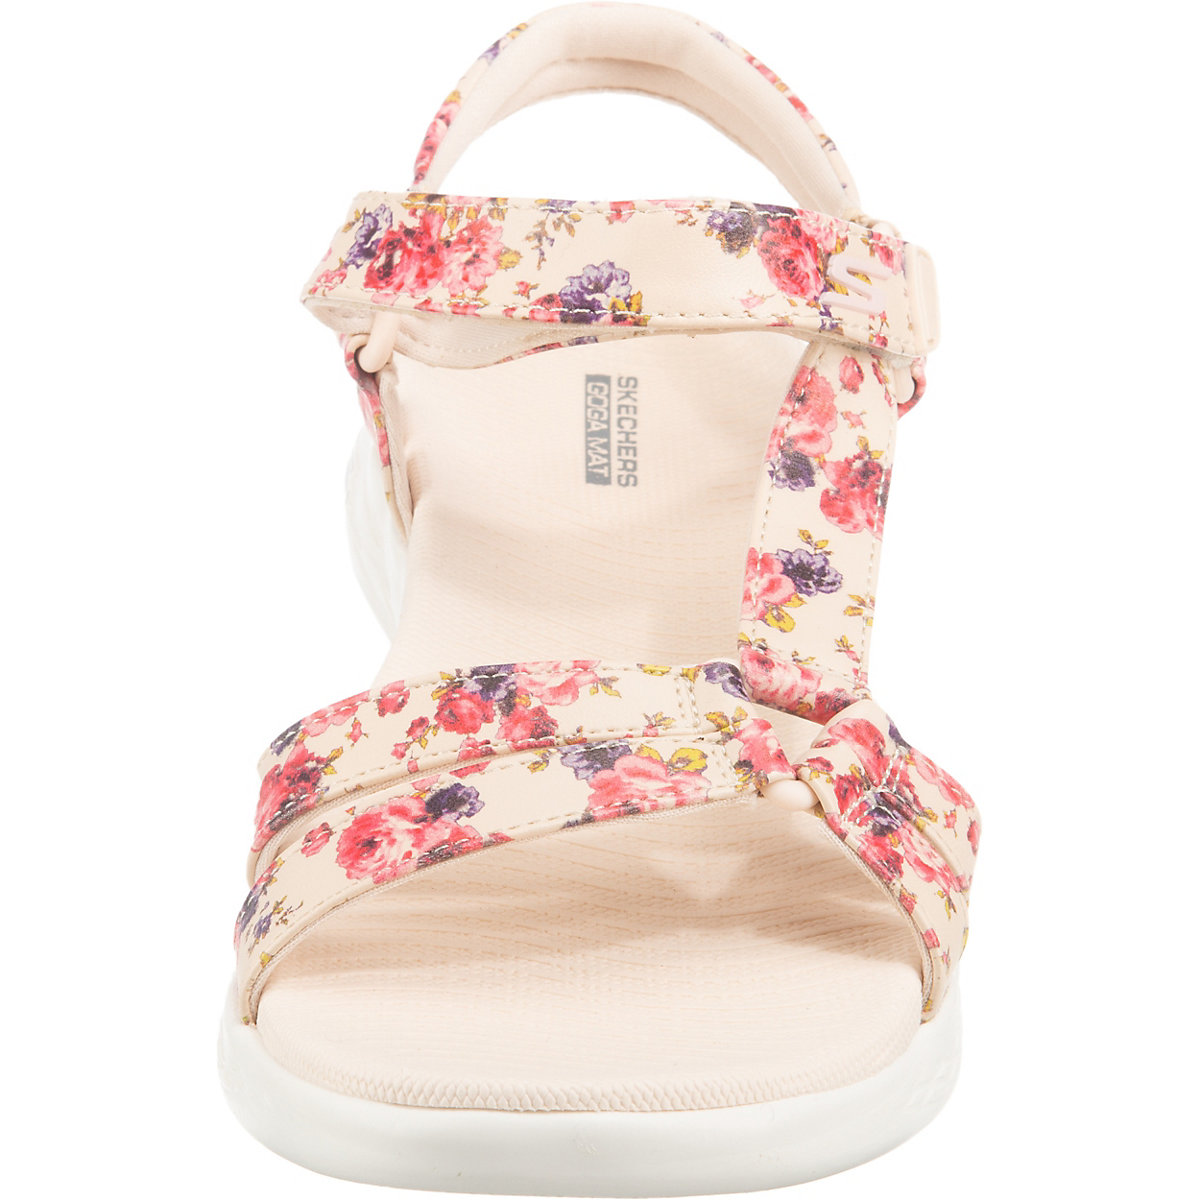 SKECHERS ON-THE-GO 600  Komfort-Sandalen beige